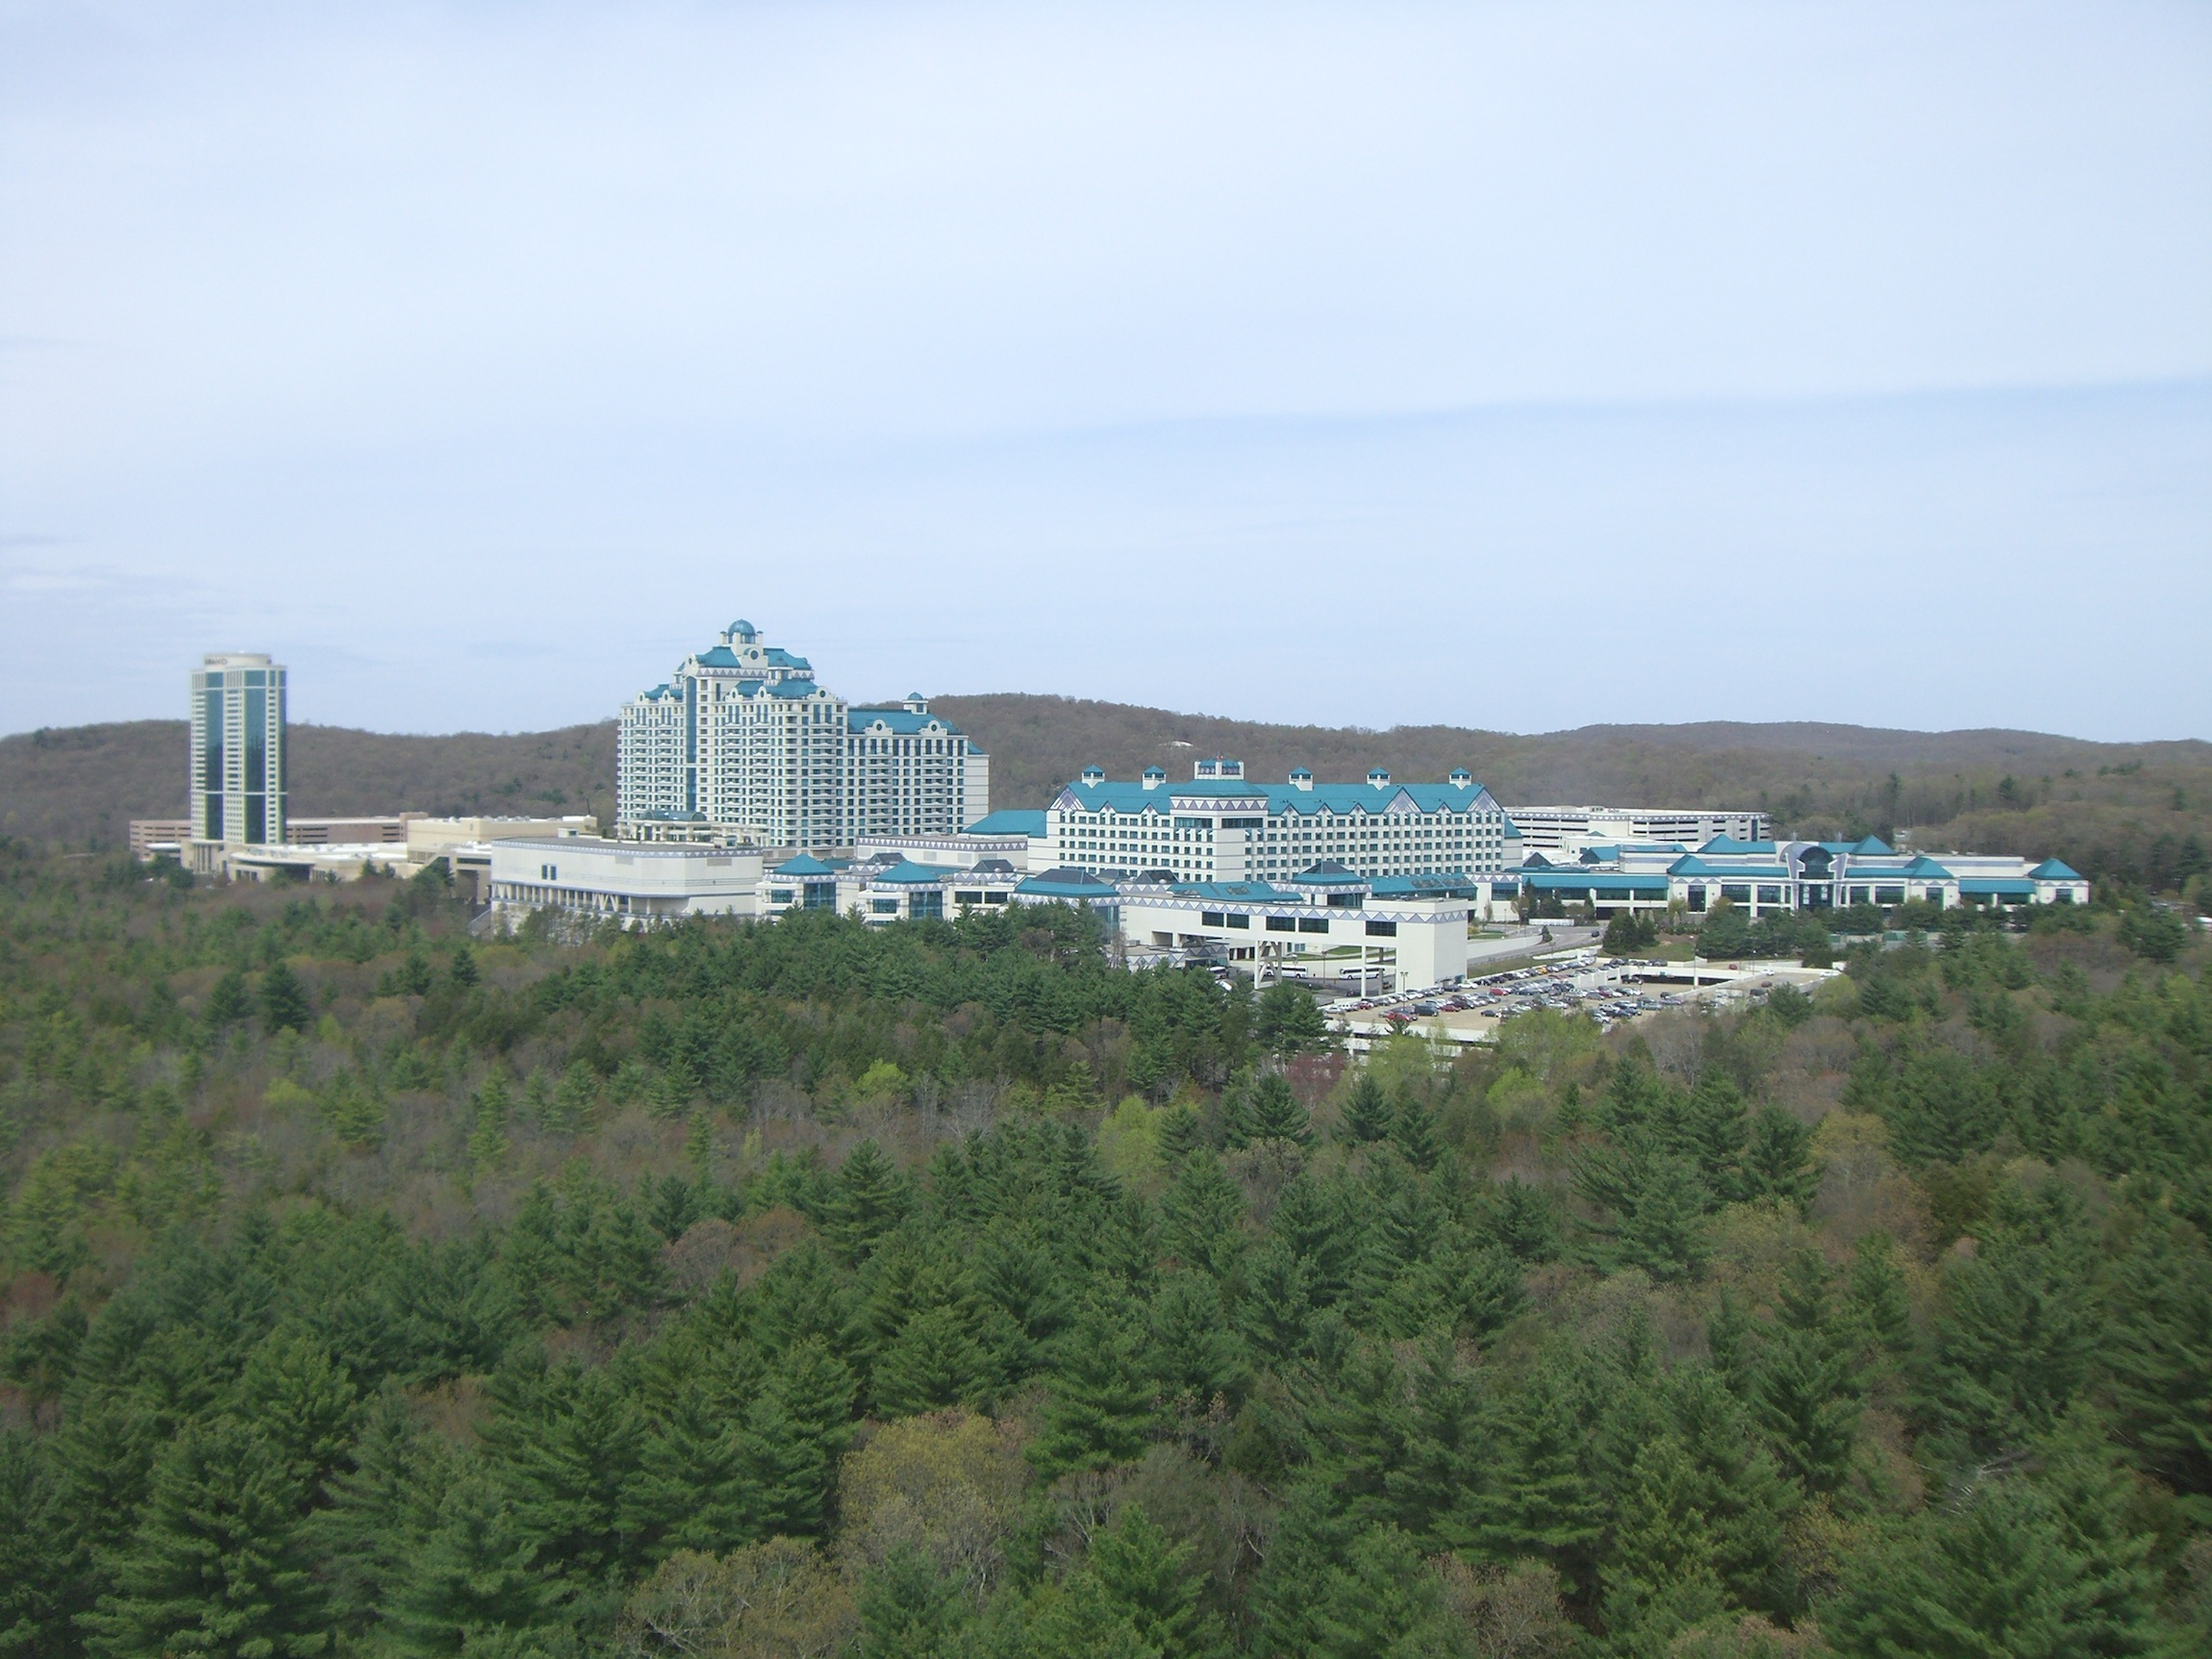 Gamblers who sued Mashantucket Tribe for $3M lose lawsuit